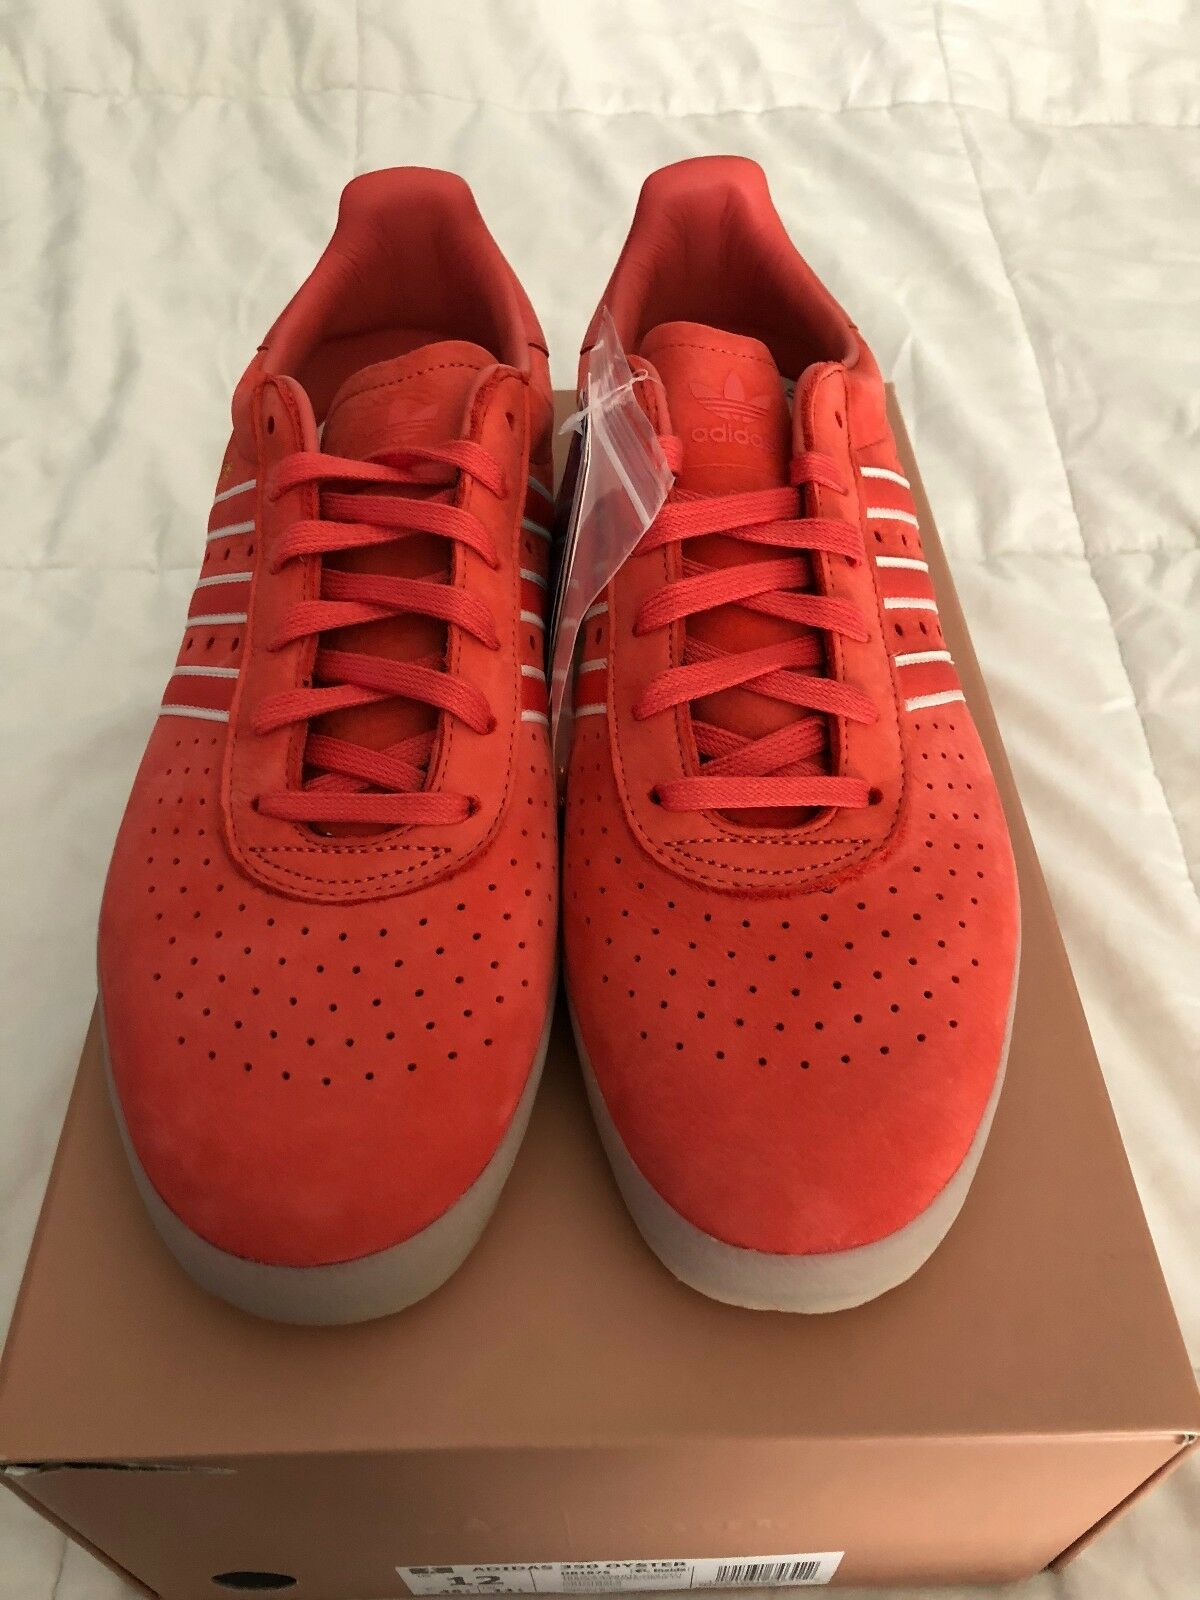 DB1975 Adidas Men Oyster Holdings Adidas 350 red trace scarlet Men's Size 12 NEW